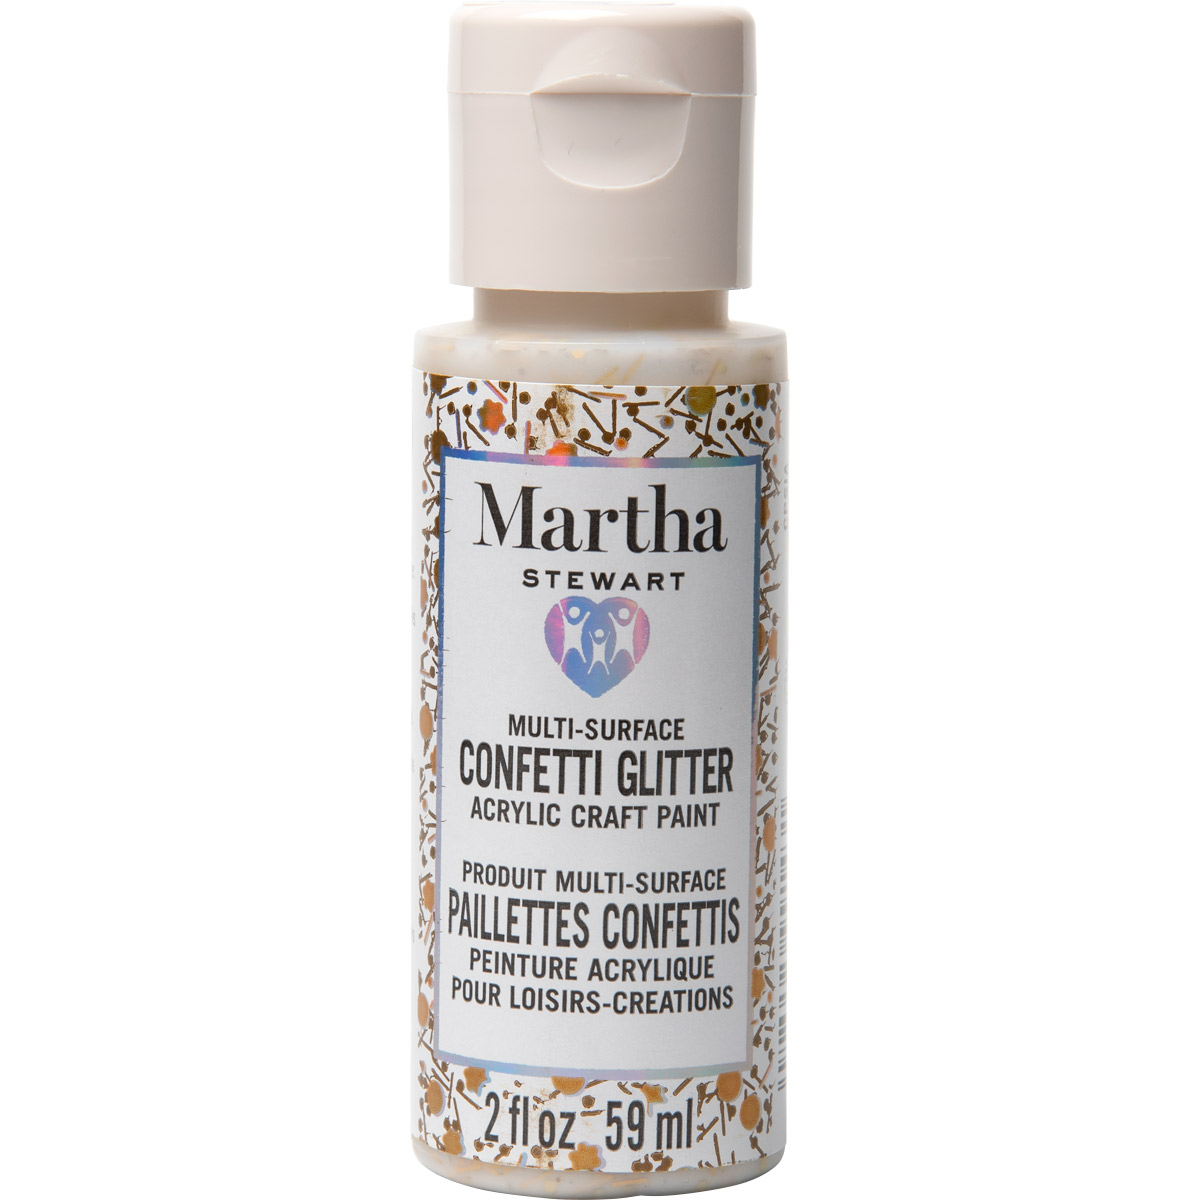 Martha Stewart ® Multi-Surface Confetti Glitter Acrylic Craft Paint CPSIA - Floral Parade, 2 oz. - 9